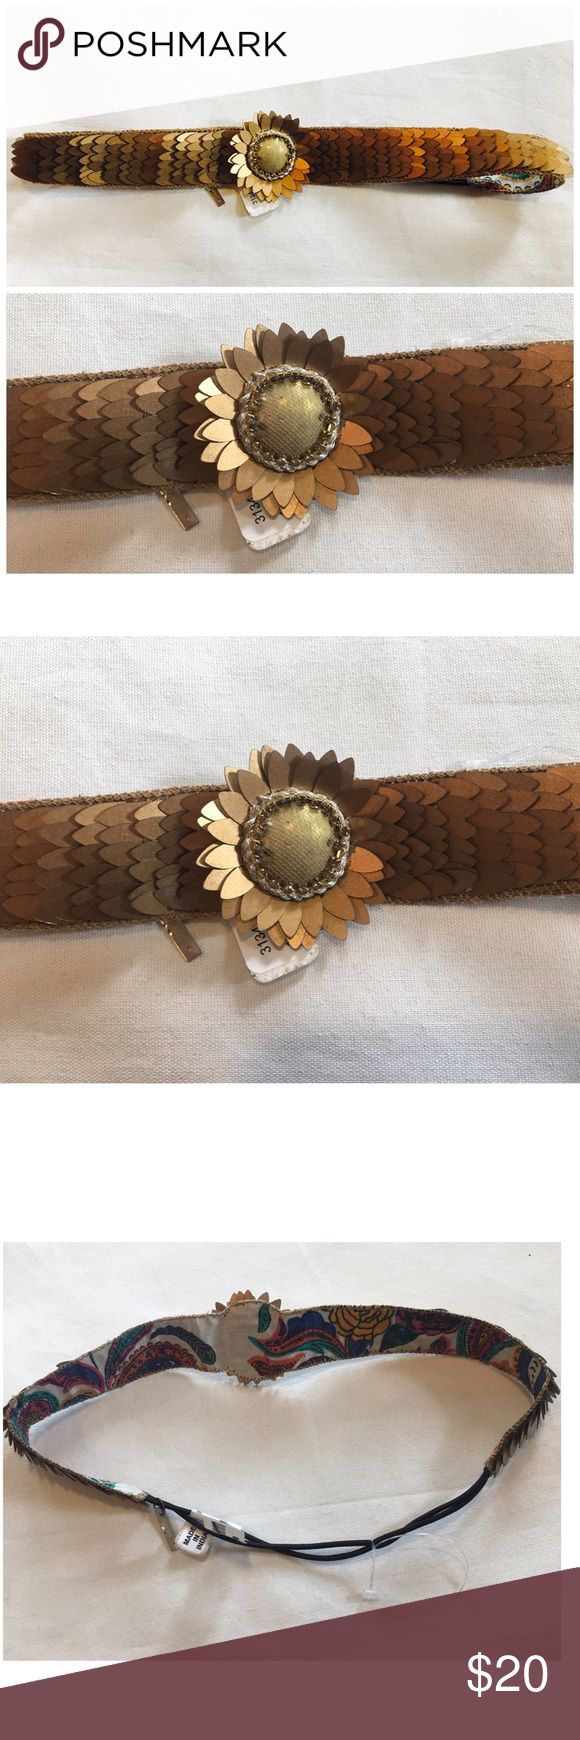 FREE PEOPLE DEEPA GURNANI SUNFLOWER HEADBAND BOHO FREE PEOPLE DEEPA GURNANI Headband. Perfect for festival season, gear up with the most important flower child accessory a golden sunflower Headband. Beautiful ❤❤❤ brand new with tag, the tag is marked. $38 retail Free People Accessories Hair Accessories